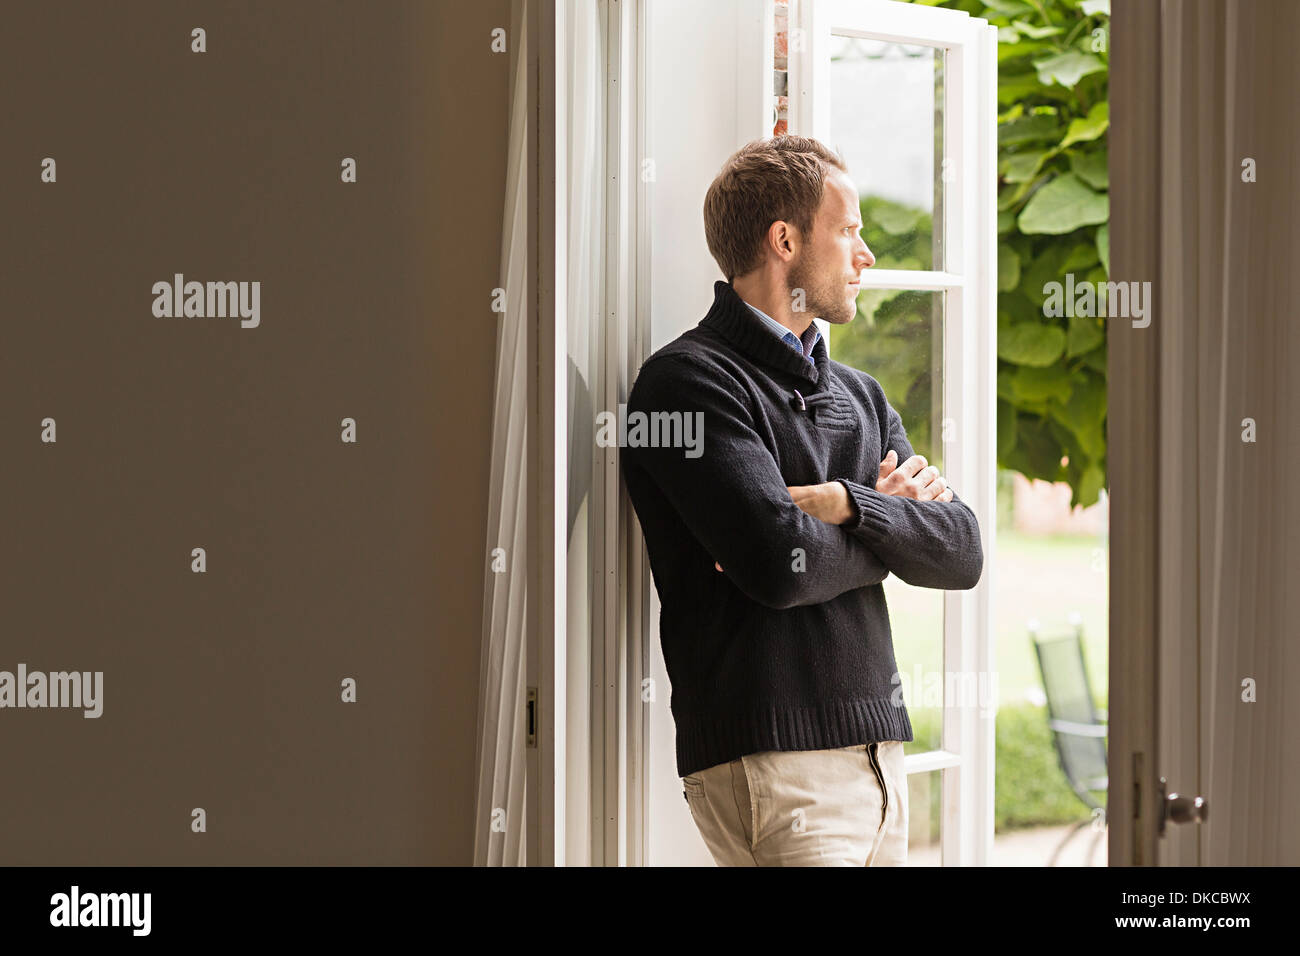 Mid adult man looking out of window, arms folded - Stock Image